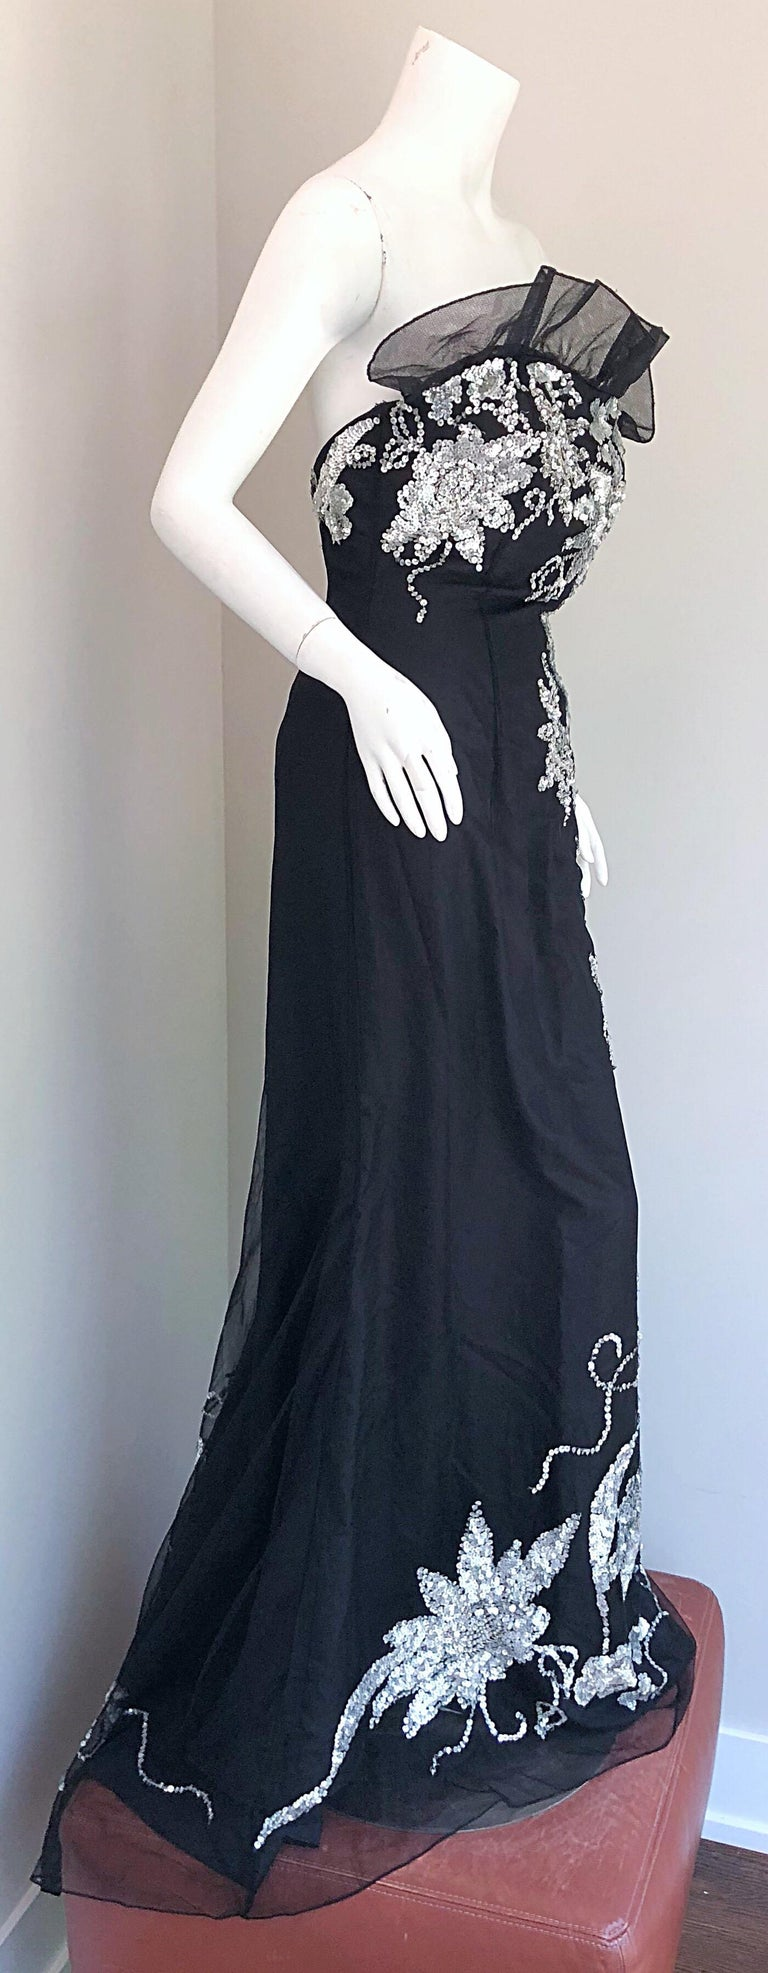 Gorgeous 1990s Black and Silver Sequined Dramatic Strapless Vintage 90s Gown  1